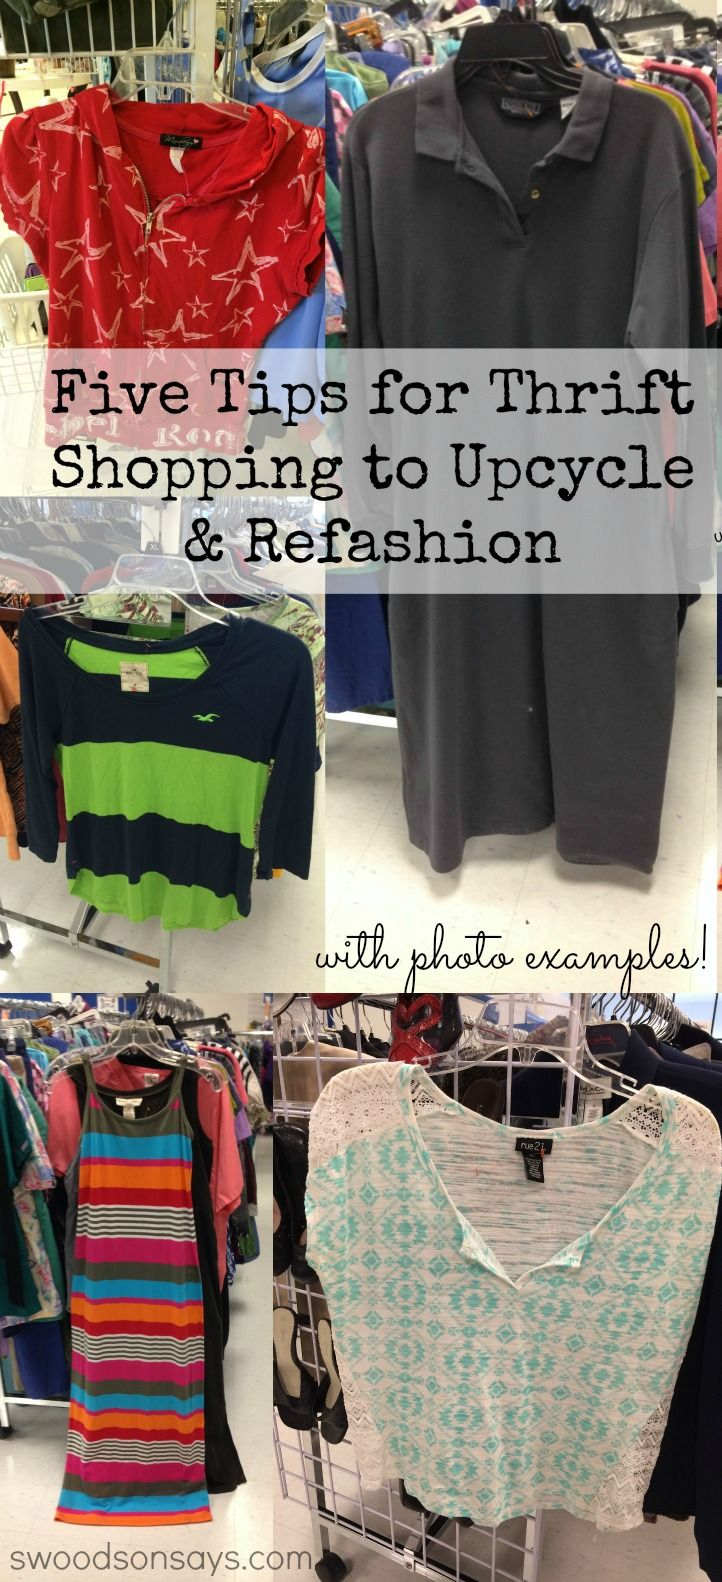 Five Tips for Thrift Shopping to Upcycle